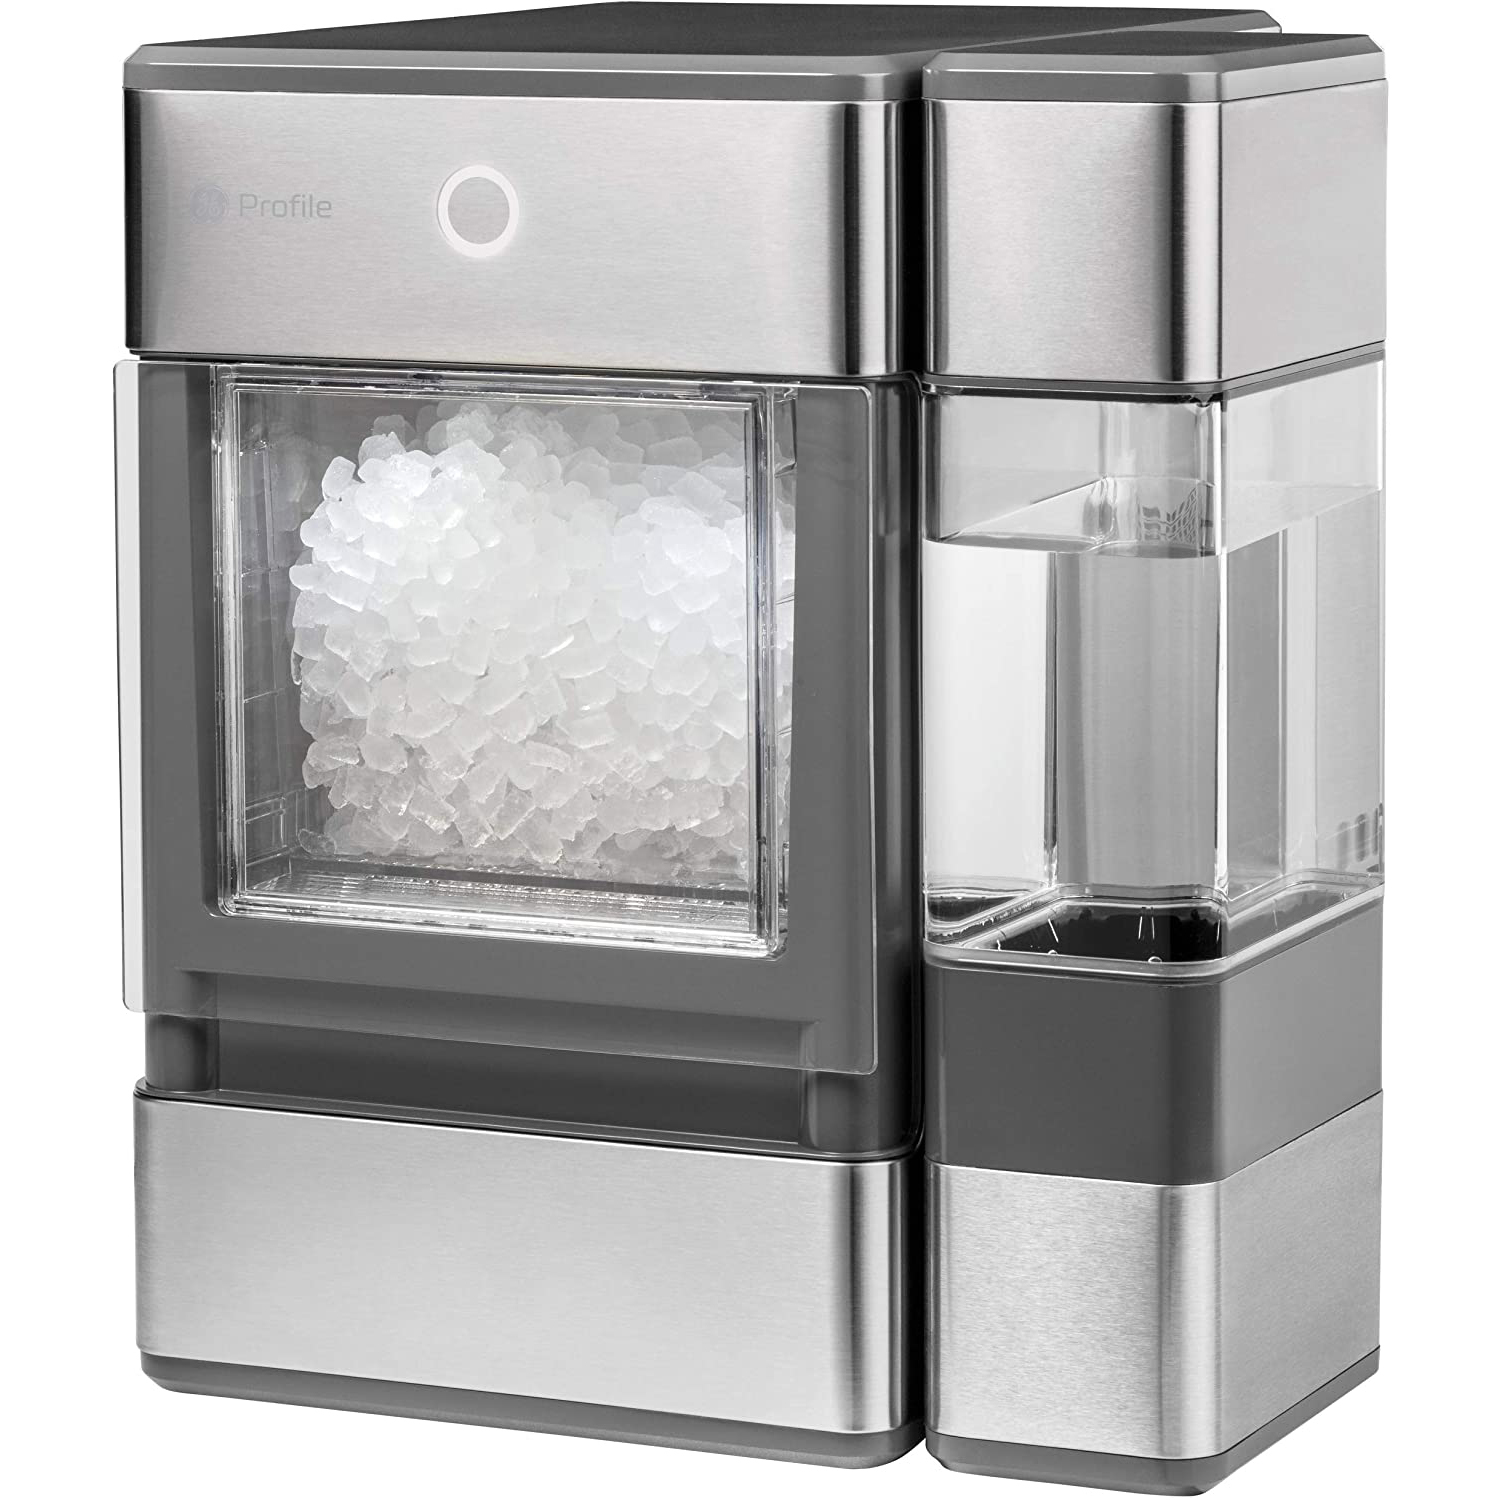 GE Profile Opal Countertop Nugget Ice Maker on a white background